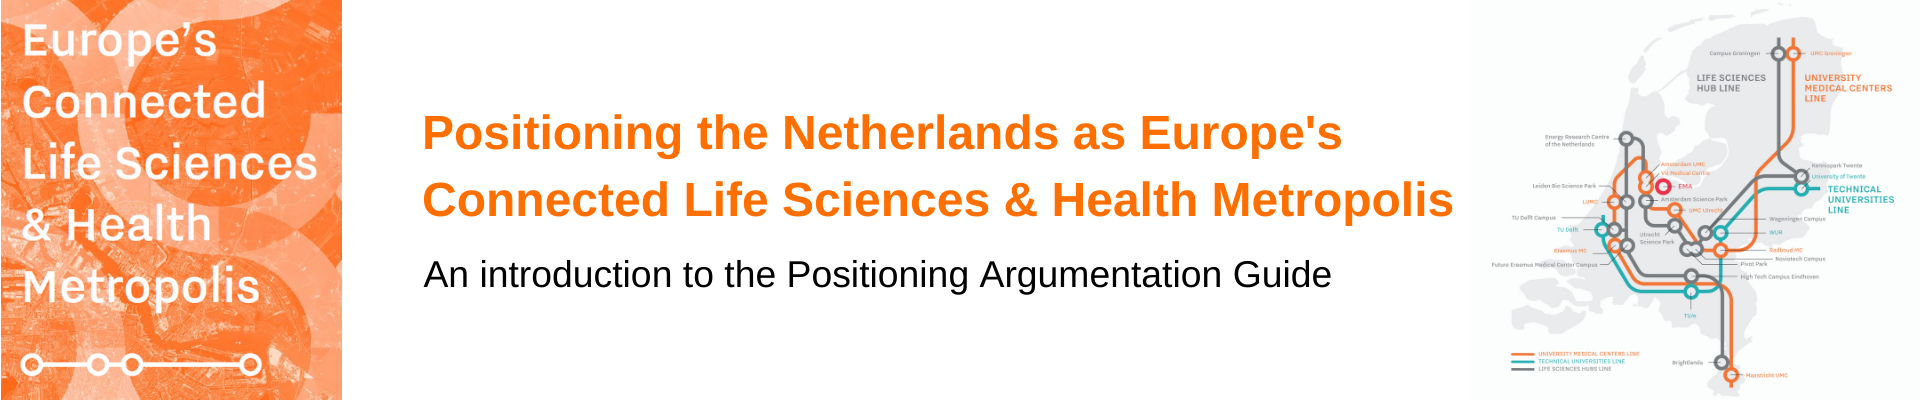 Positioning the Netherlands as Europe's Connected Life Sciences and Health Metropolis